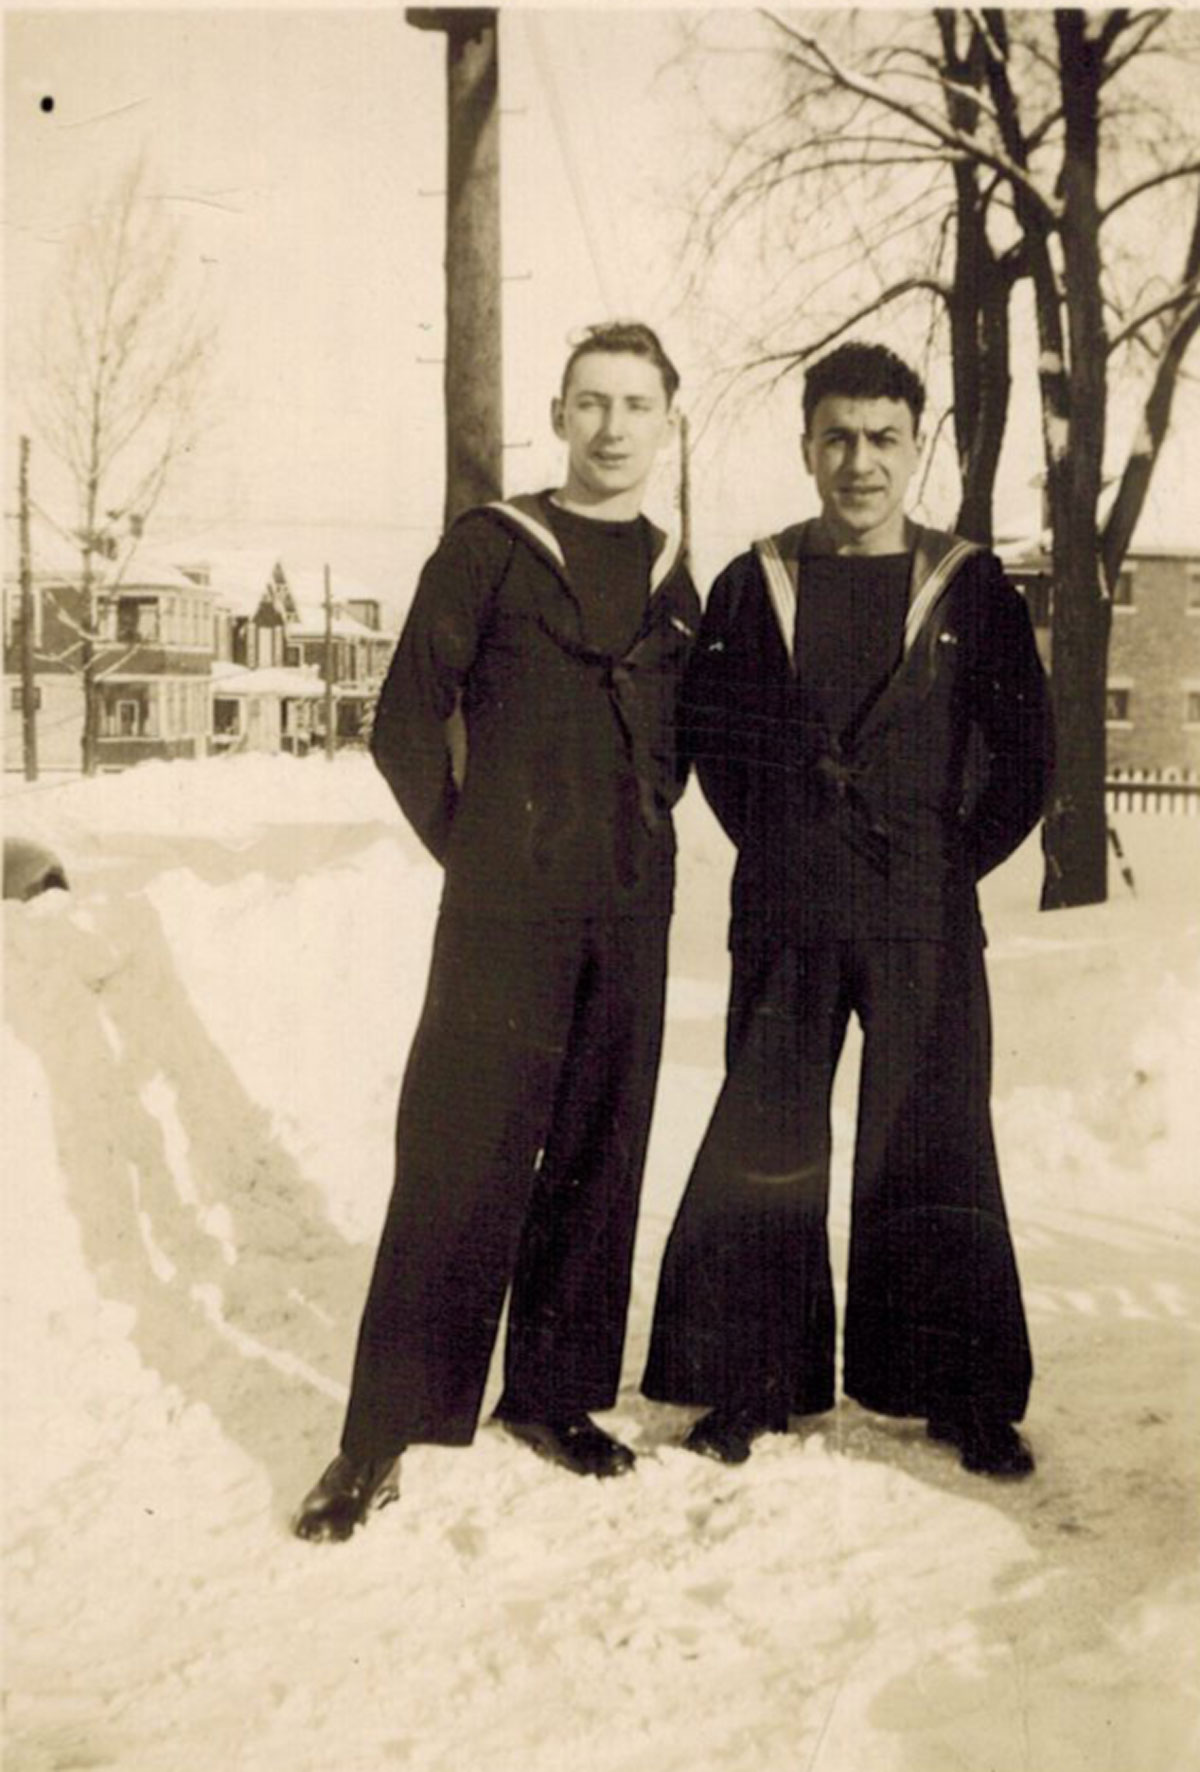 Photograph of M. Fred Tobias (right).